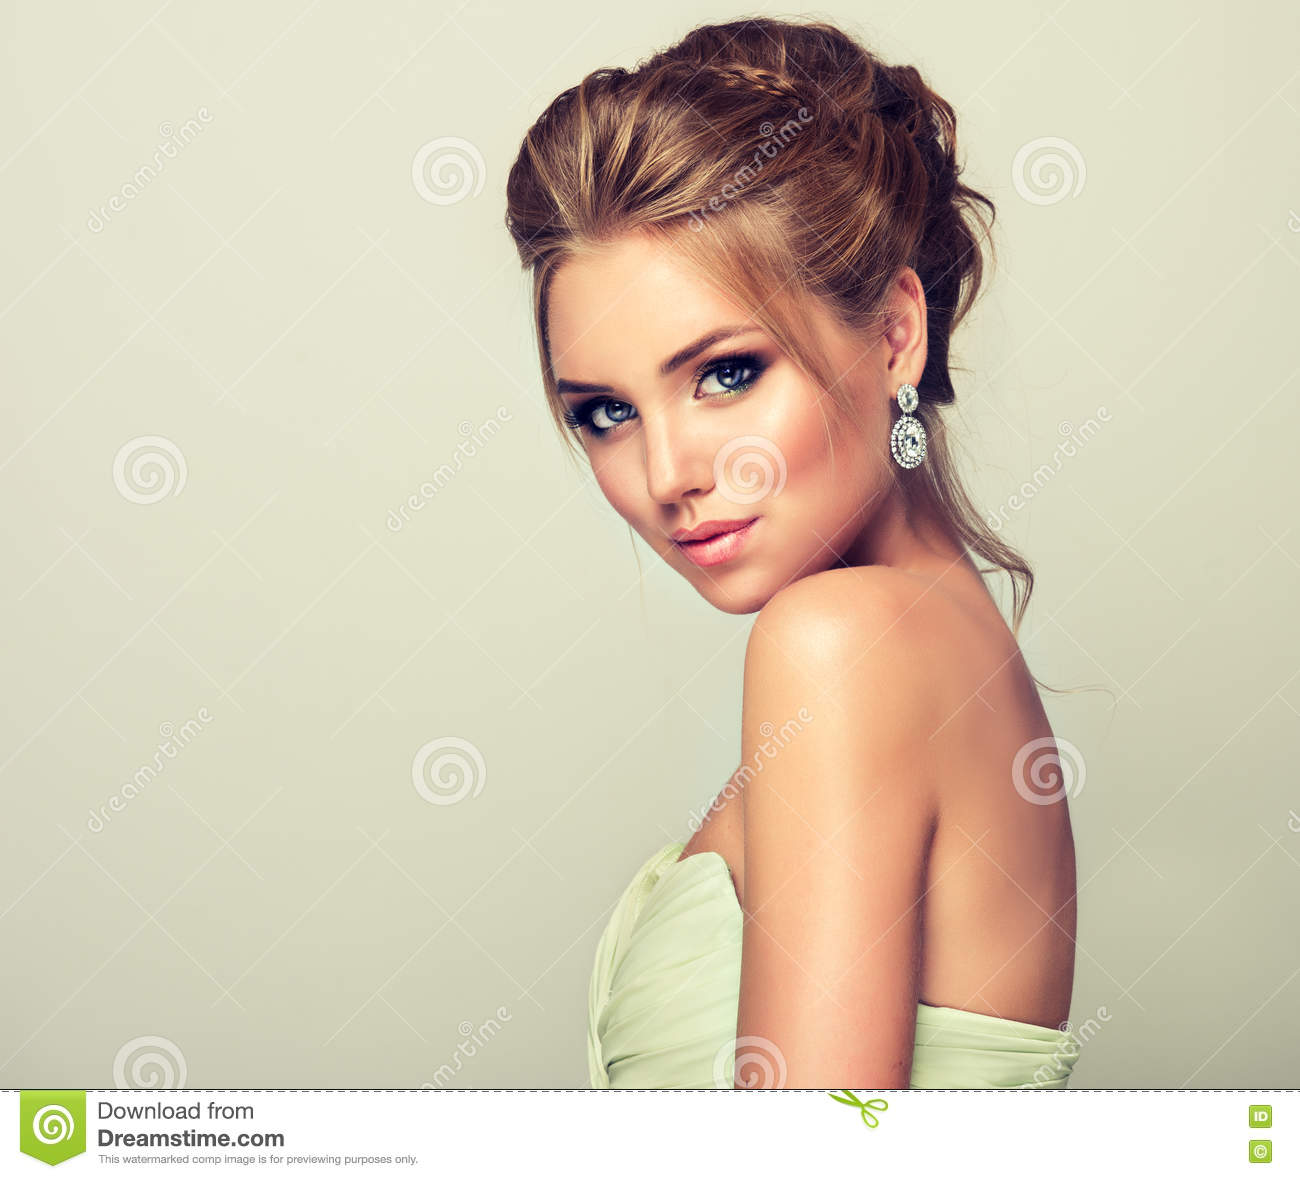 Woman With Blond Hair, Wears In A Wedding Gown. Stock Image - Image ...